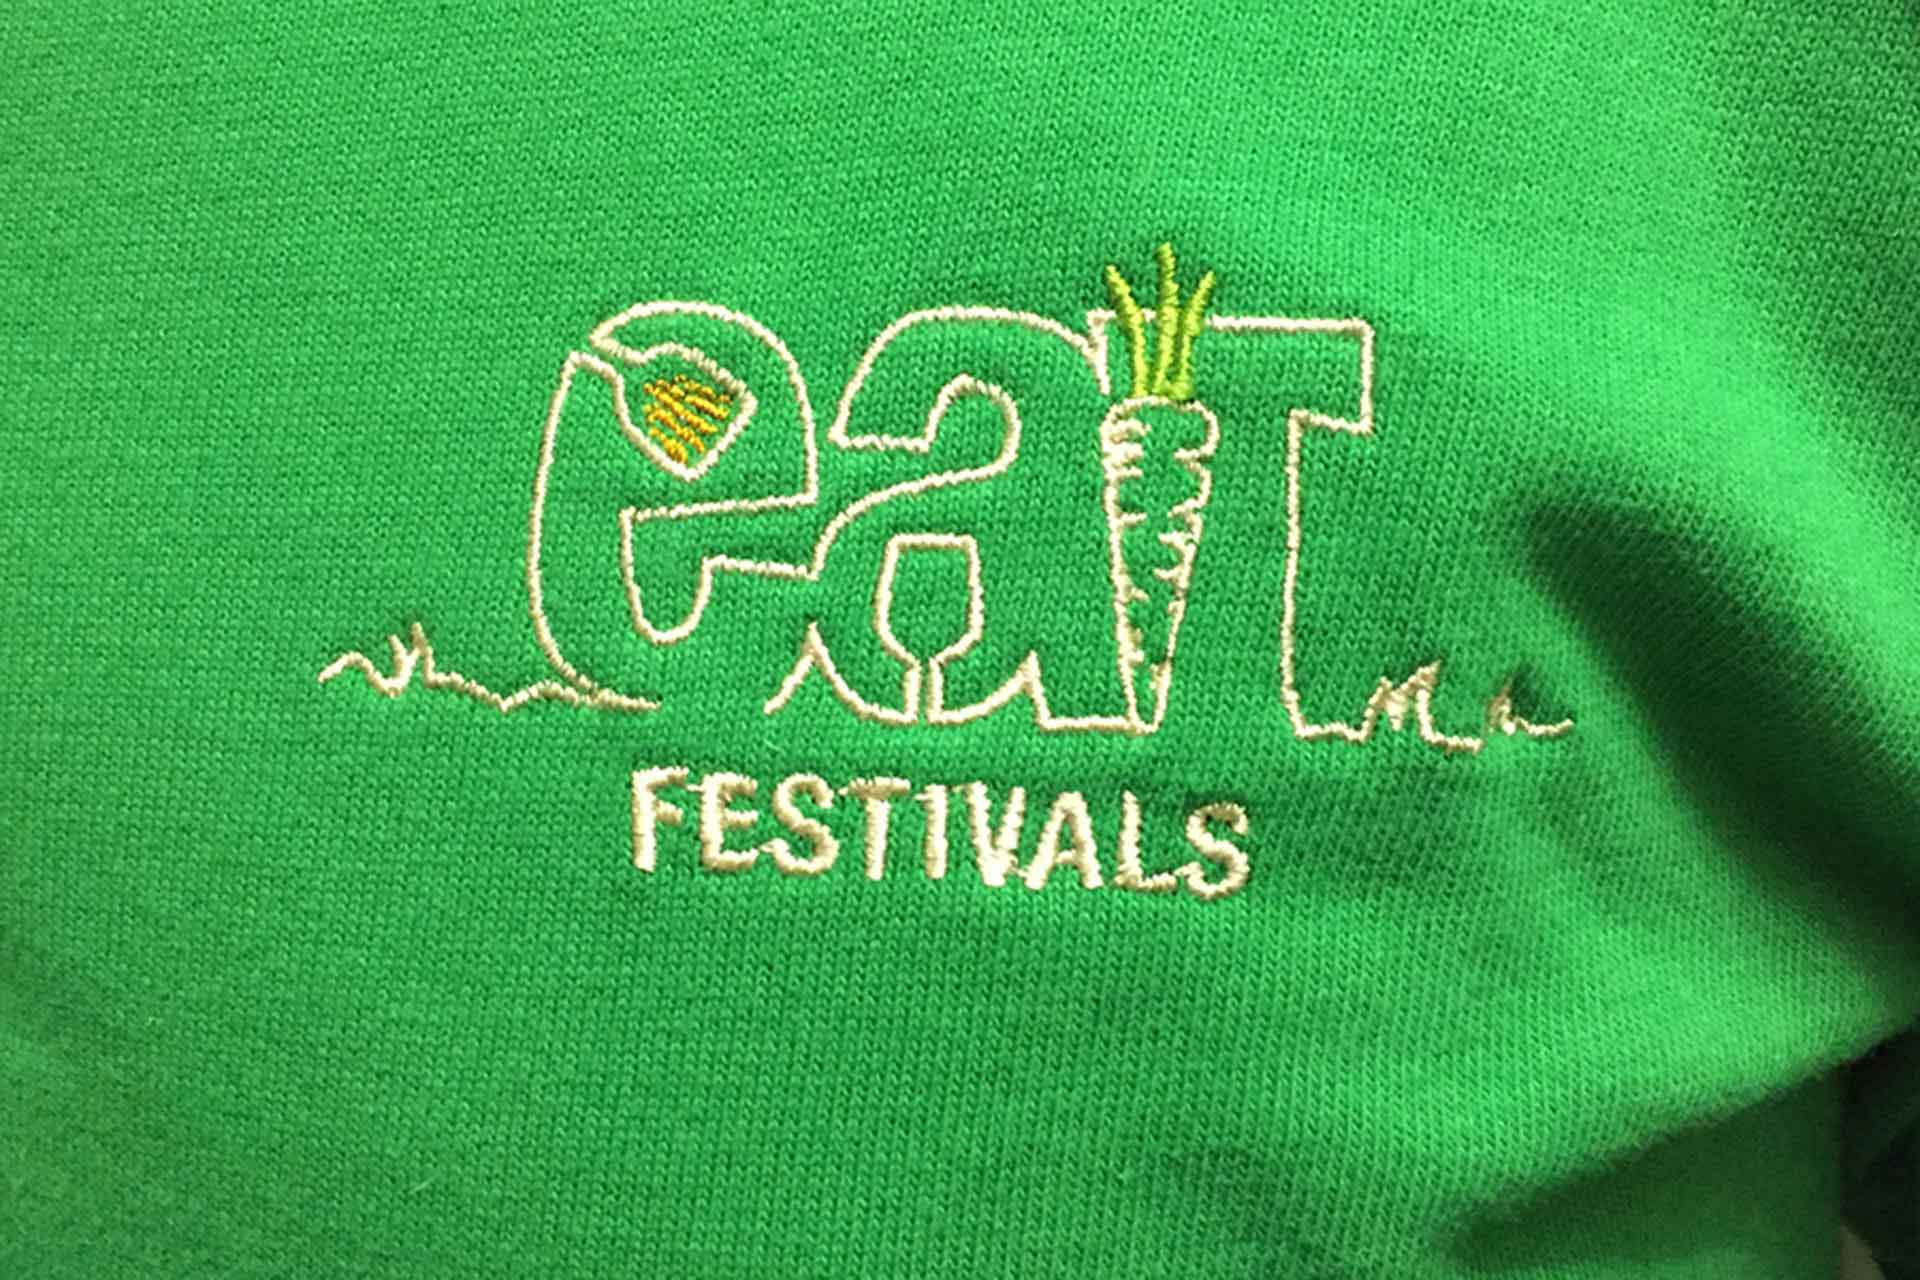 Embroidered clothing with logo design, Somerset